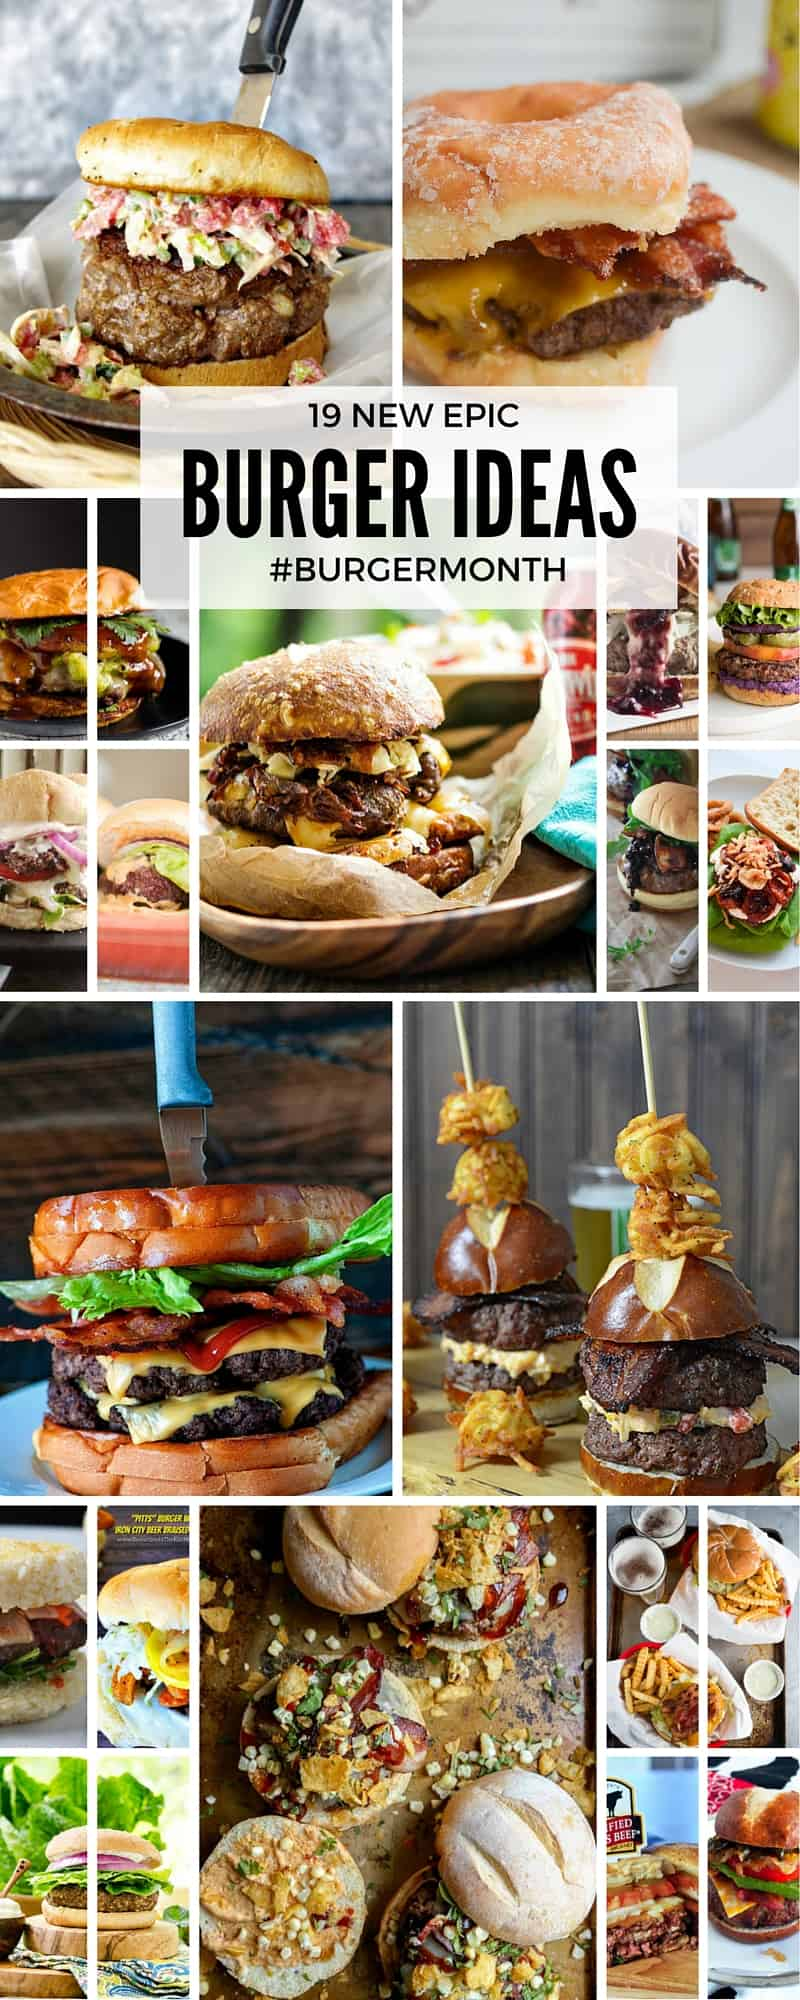 19 more epic burger ideas for grilling all summer long